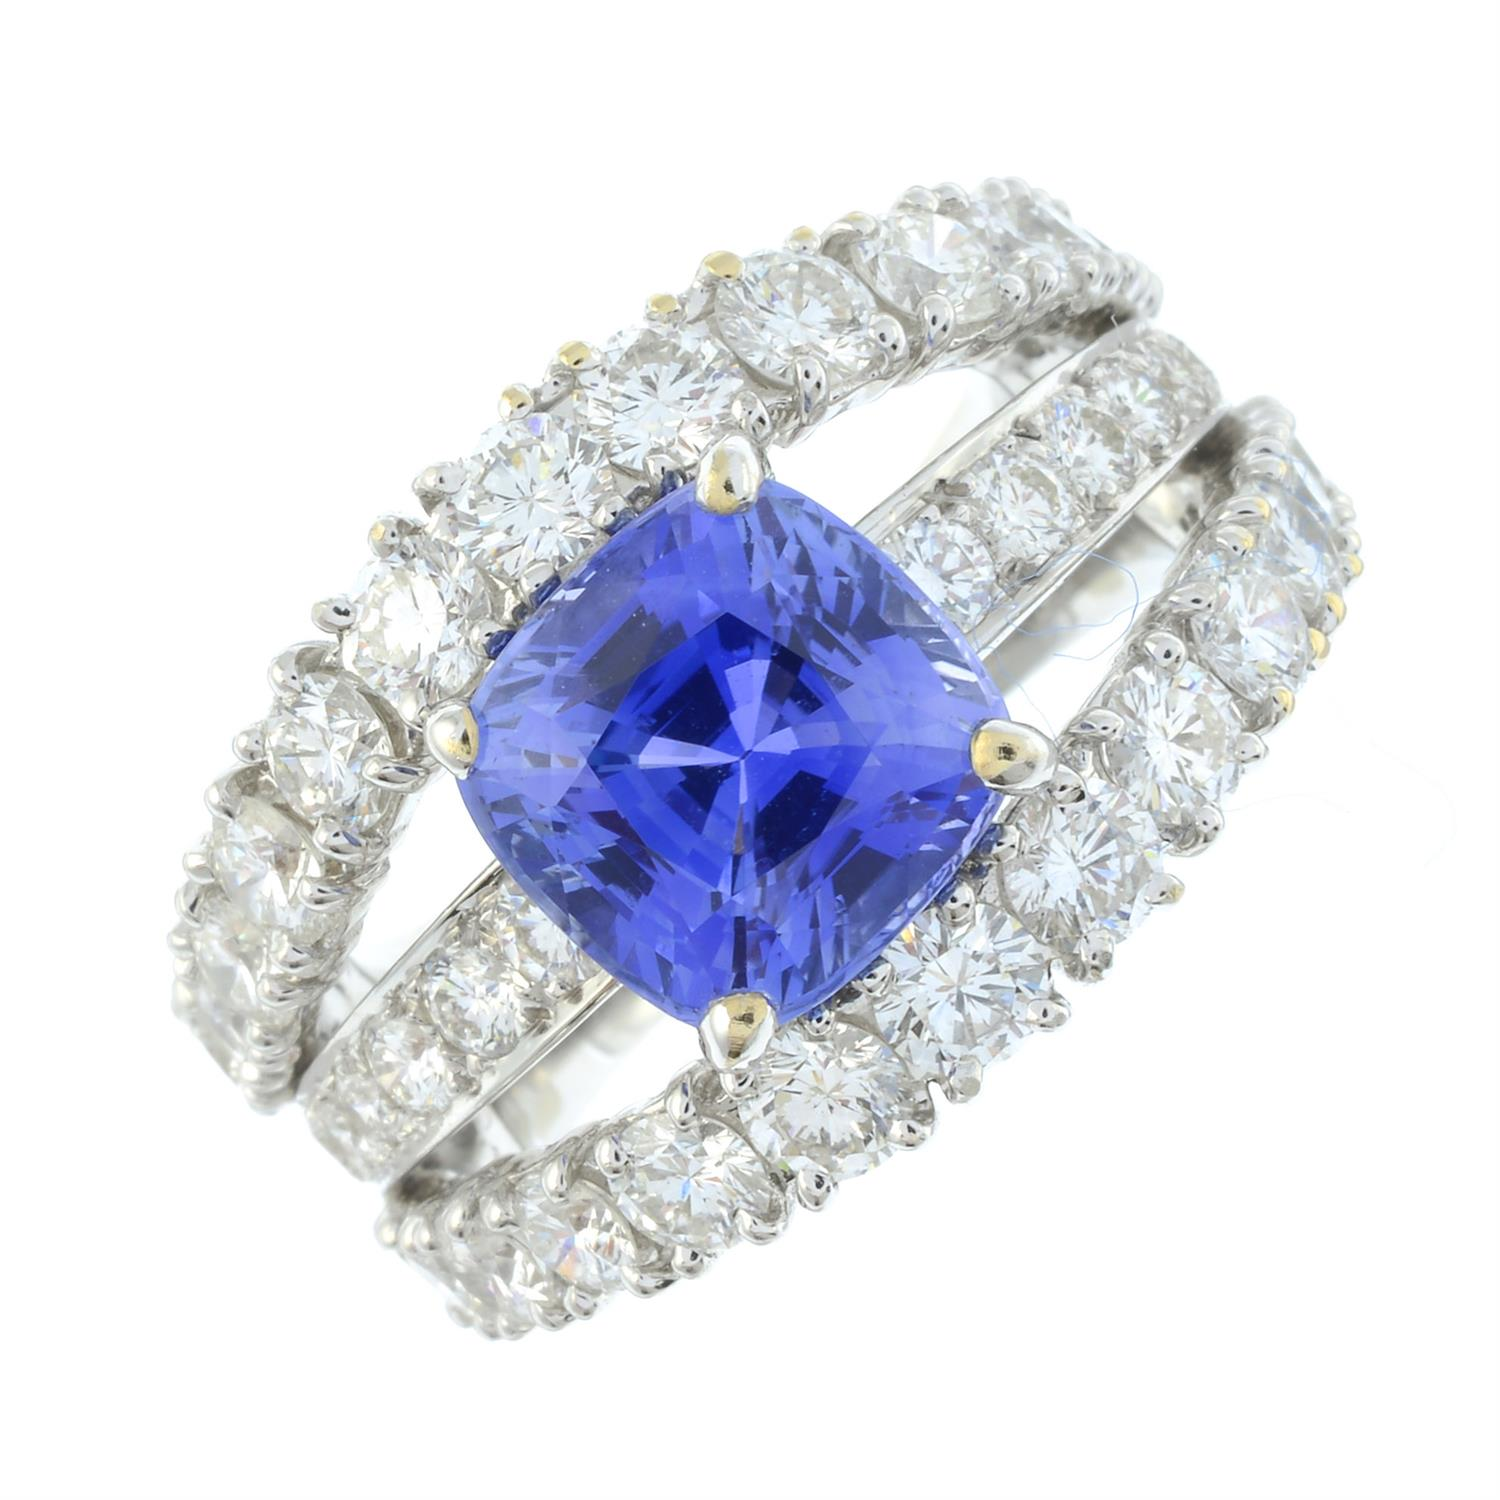 An 18ct gold no-heat sapphire and brilliant-cut diamond dress ring, by Ritz Fine Jewellery. - Image 2 of 8